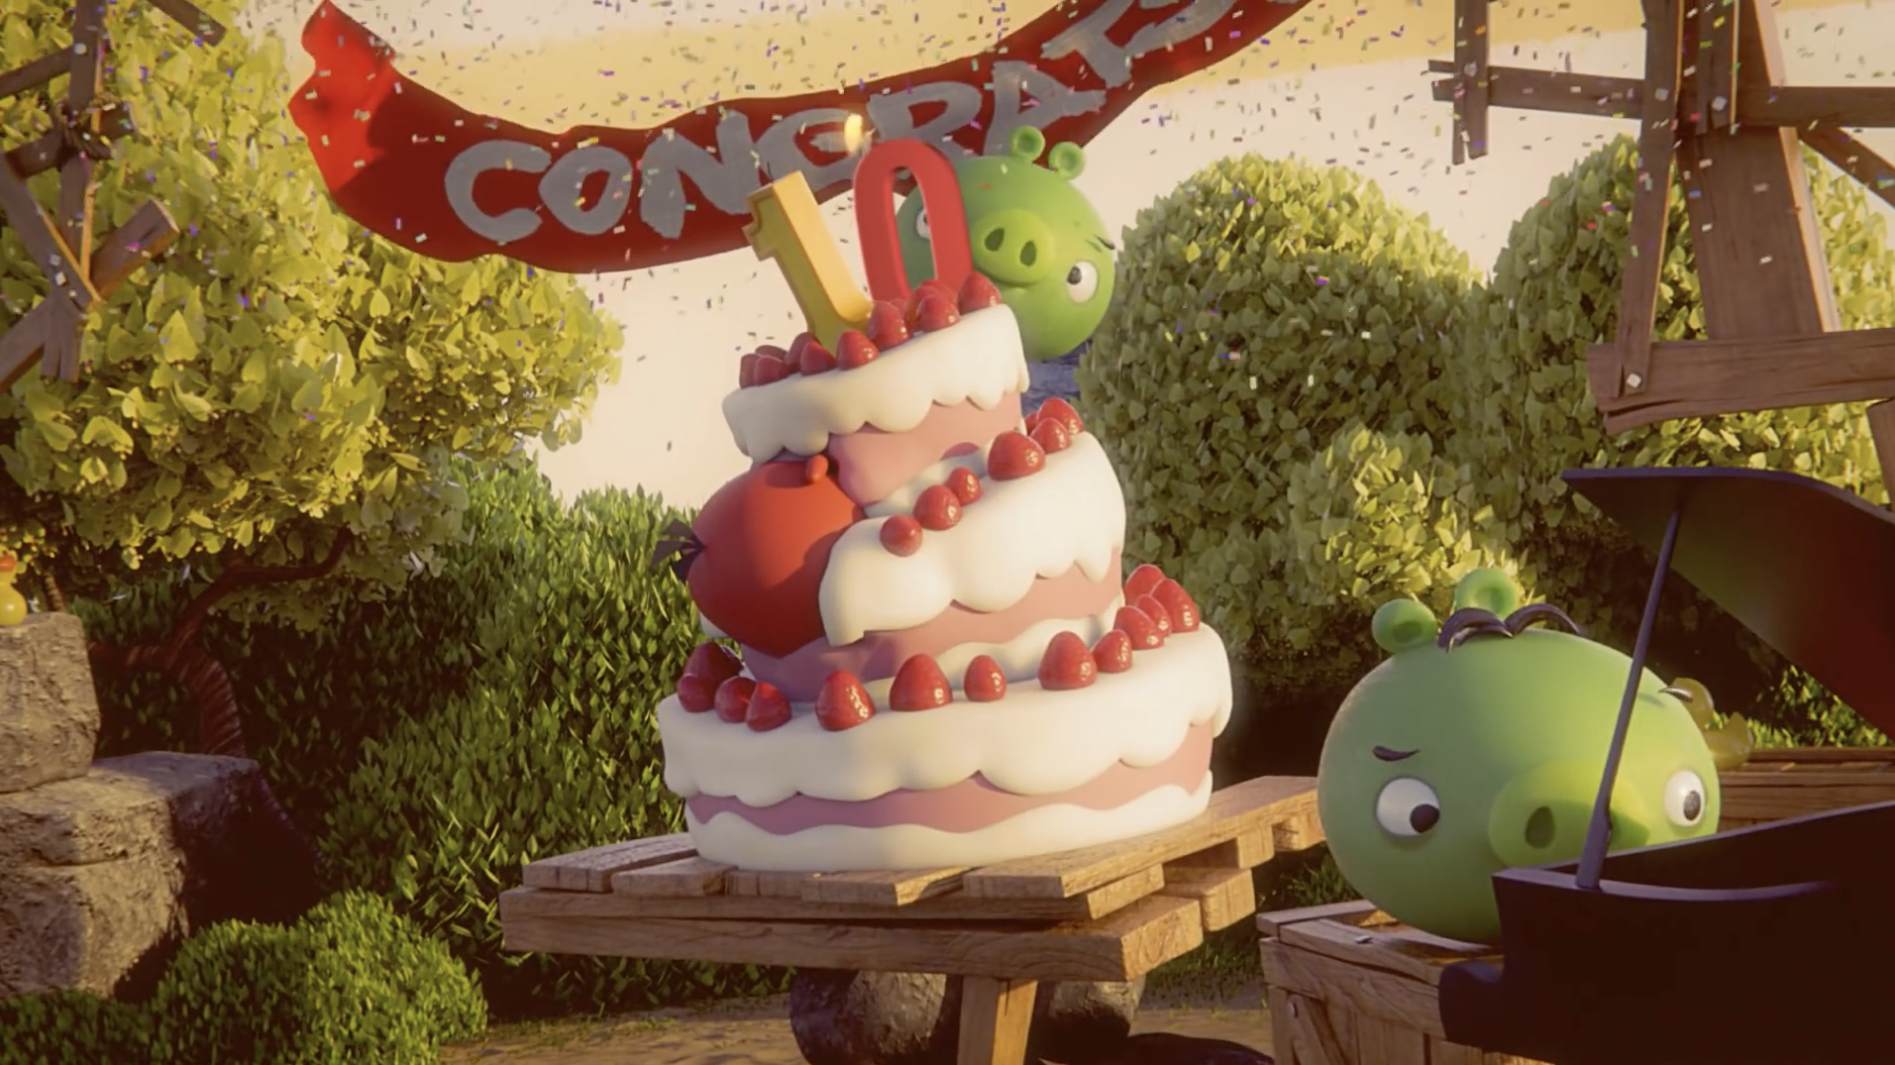 'Angry Birds'celebrates its 10th anniversary today with a look back at the past decade of franchise–good